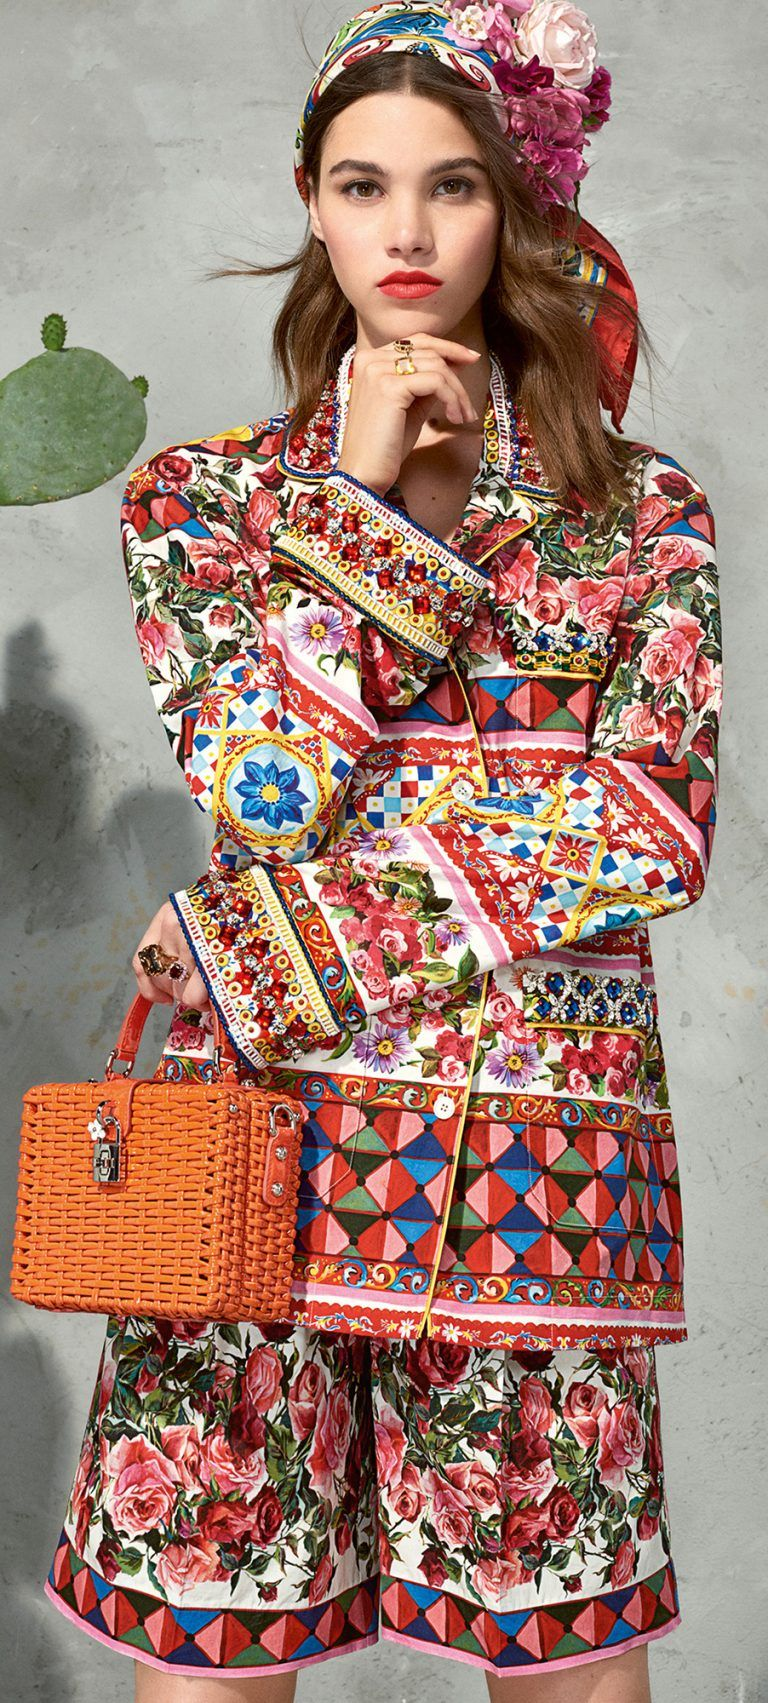 417a27a64f4 Dolce   Gabbana Spring Summer 2017 Collection Mambo